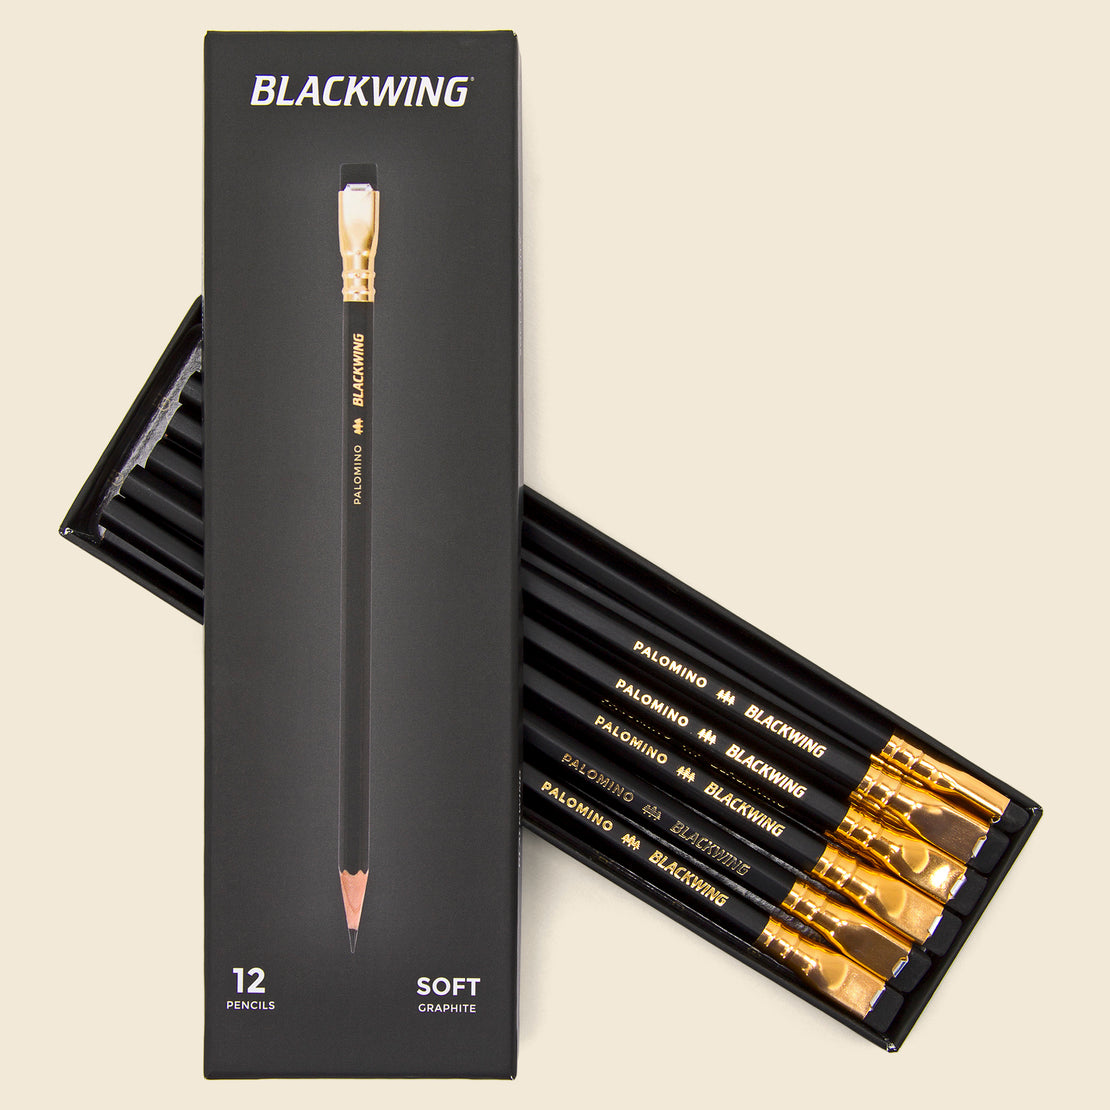 Paper Goods Blackwing Pencils - Black & Gold